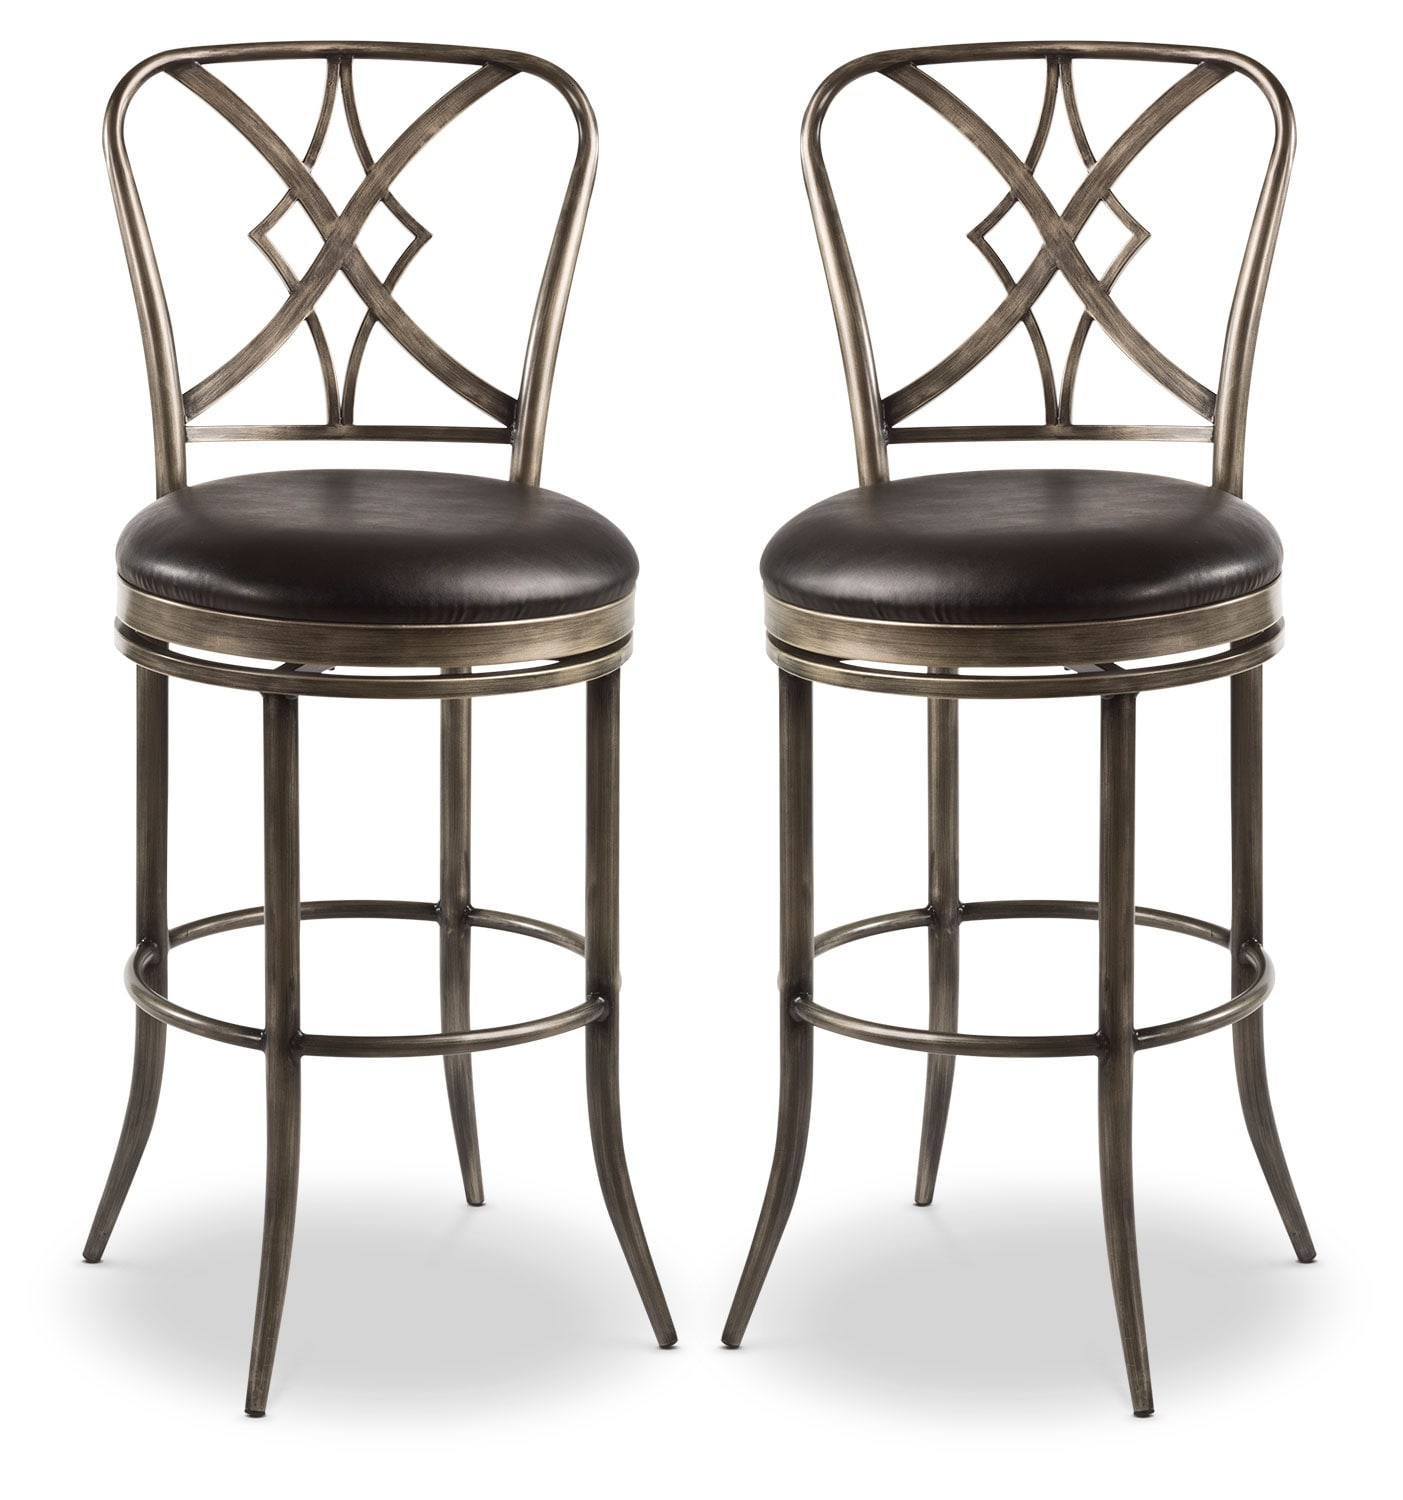 Dining Room Furniture - Jaqueline Counter-Height Swivel Stool – Set of 2